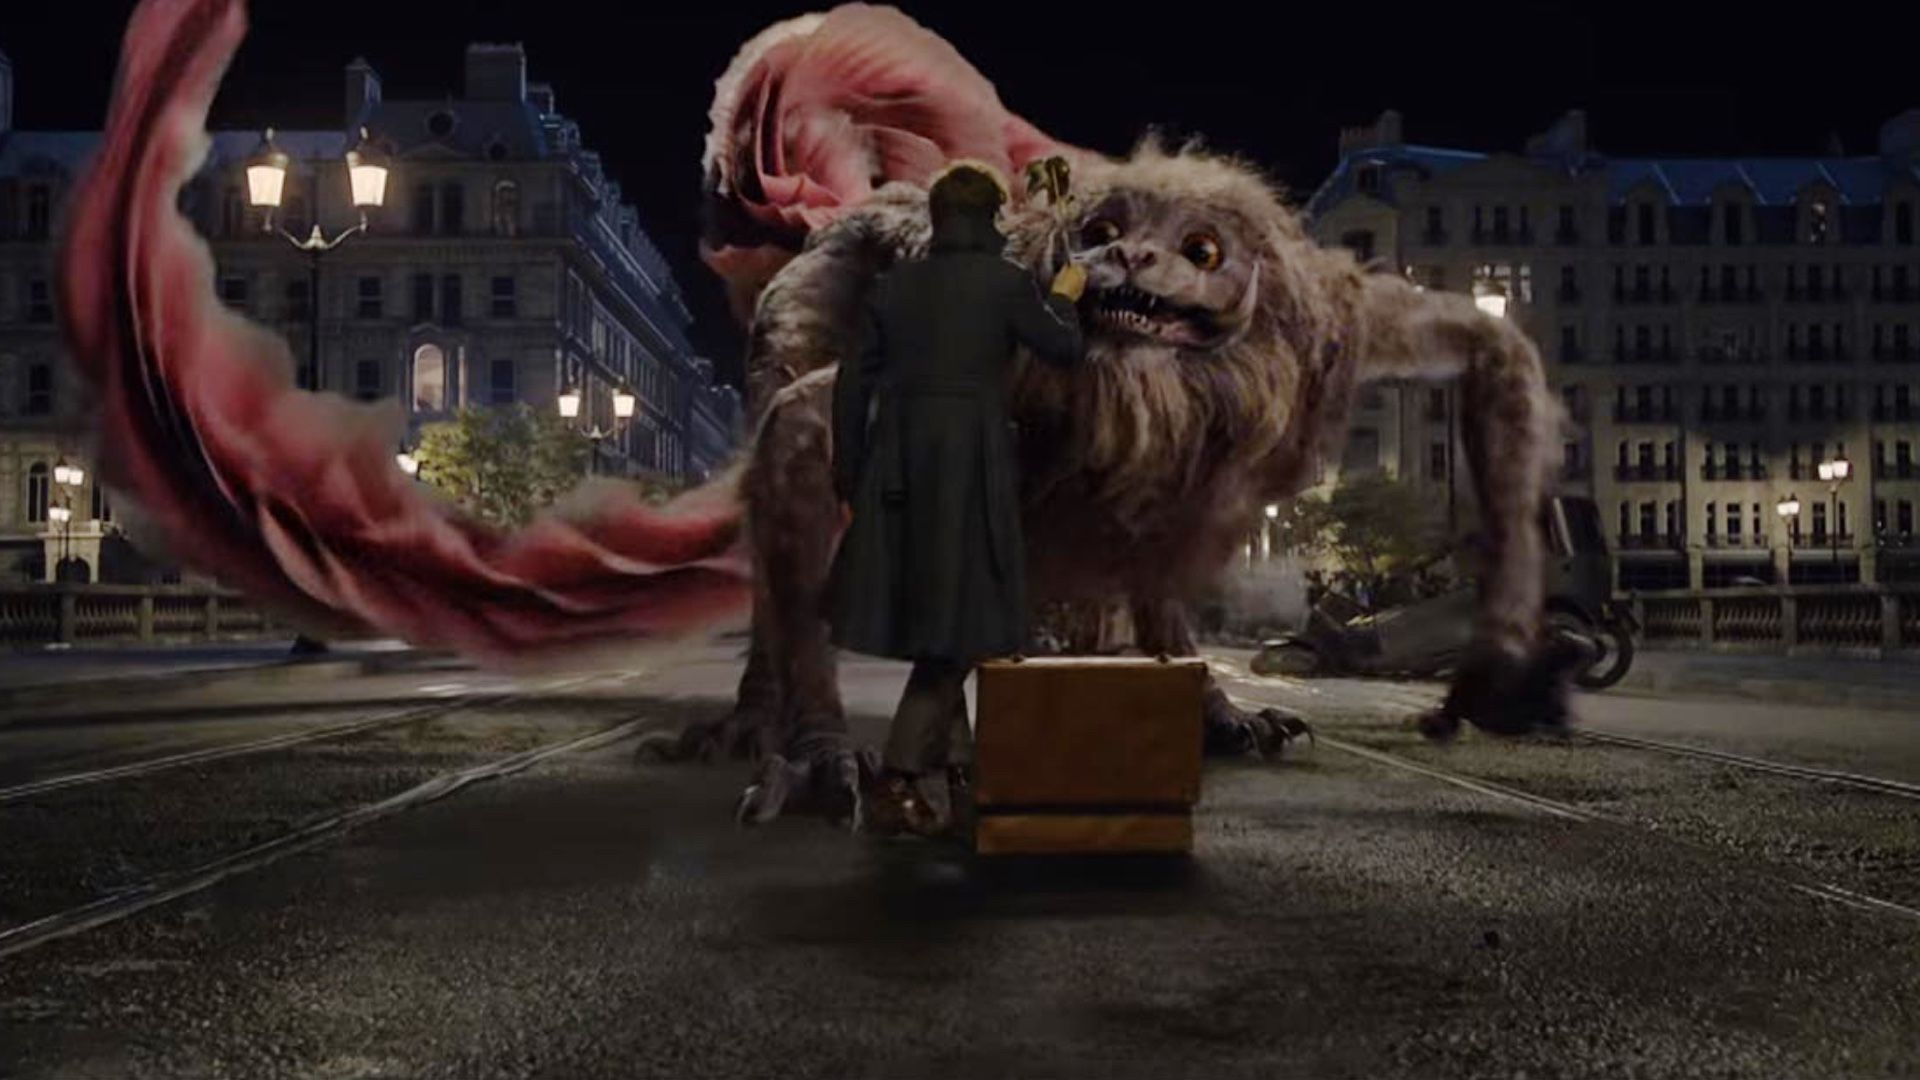 Pin On Fantastic Beasts And Where To Find Them